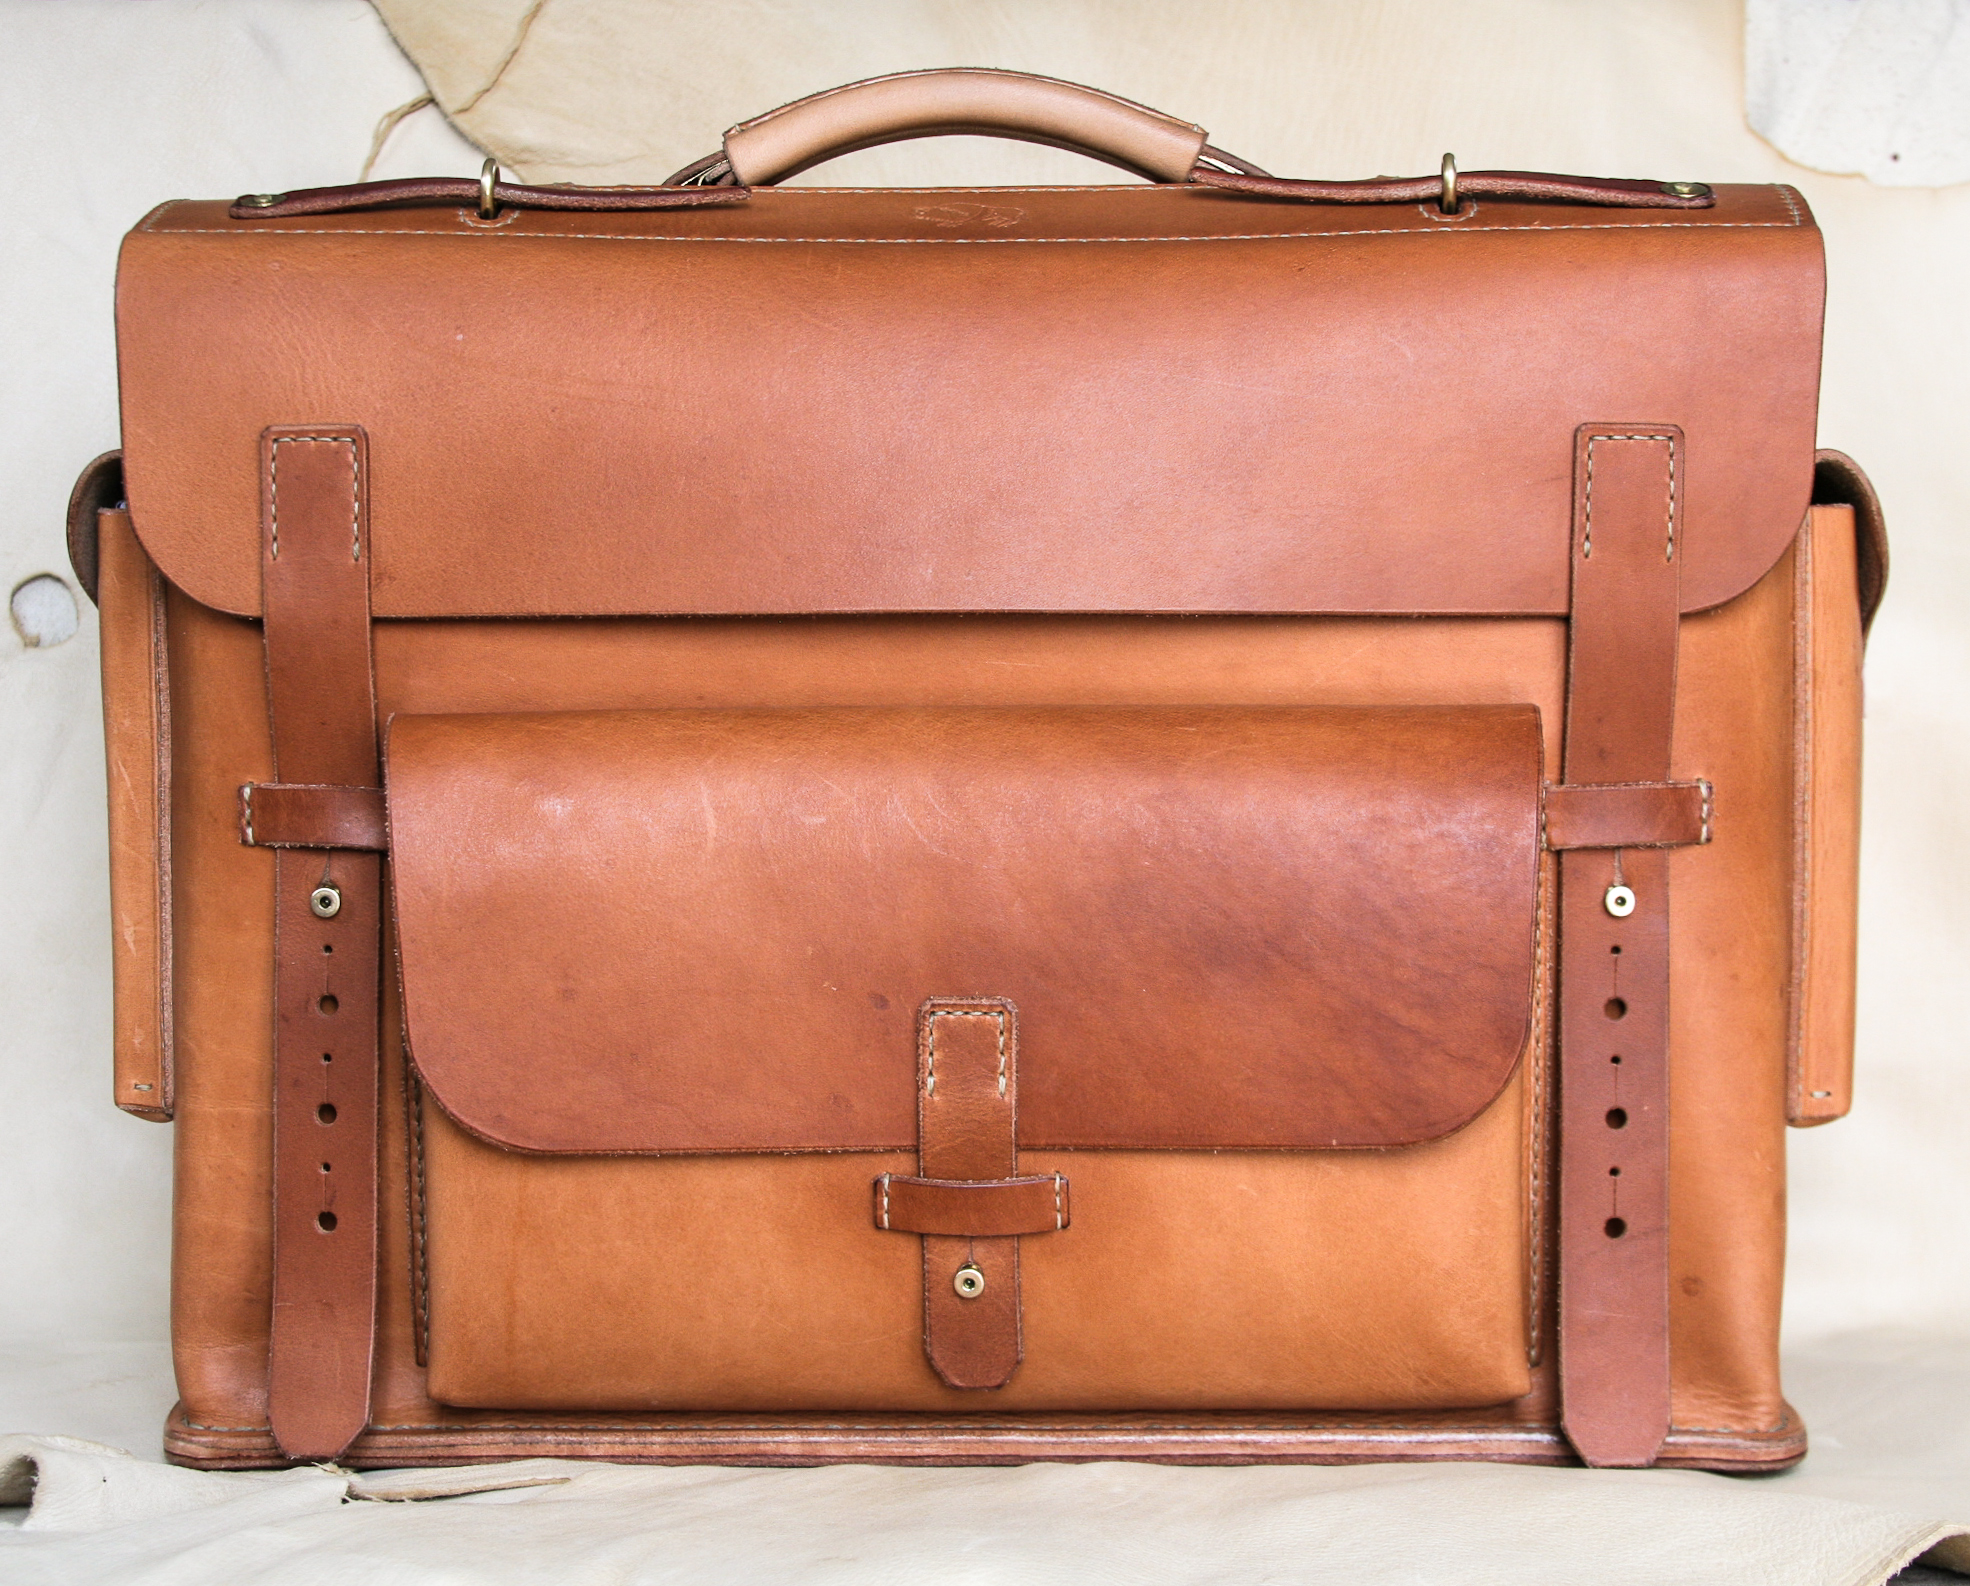 """And finally, here it is in completion...The WLC """"Mil-spec"""" Briefcase. At this point, available through special order only, and very limited. Contact if interested."""